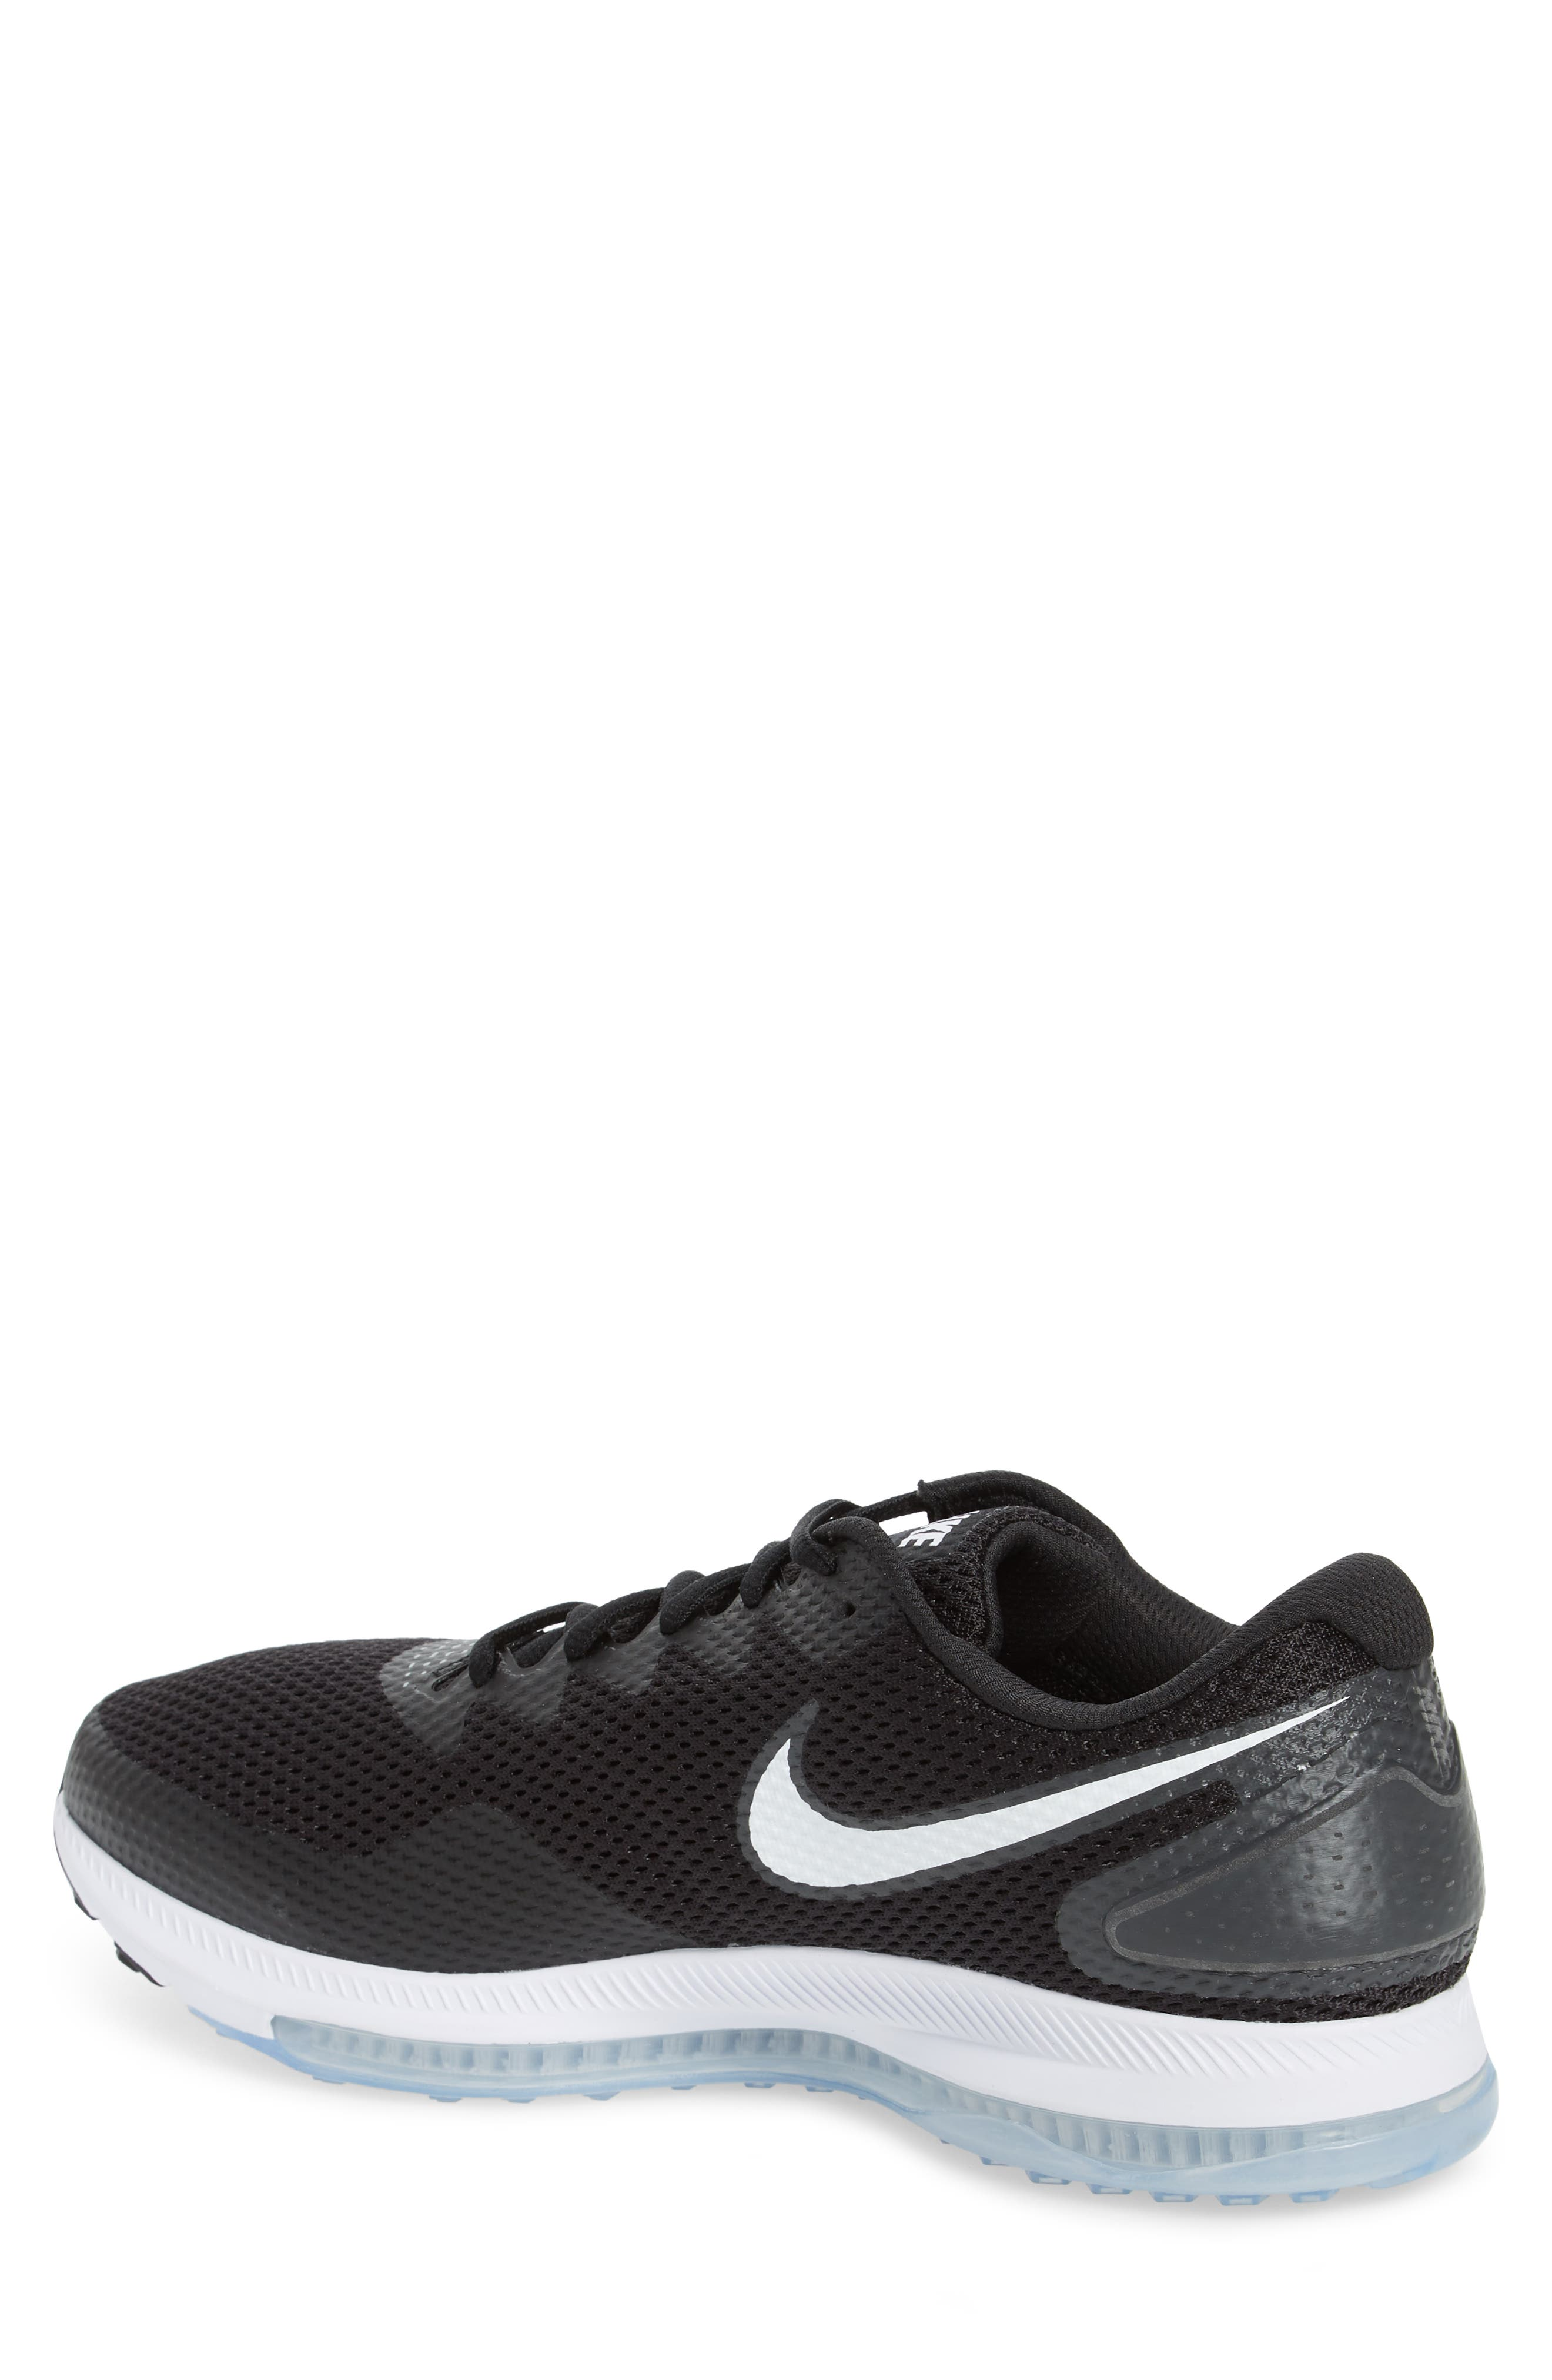 Zoom All Out Low 2 Running Shoe,                             Alternate thumbnail 2, color,                             Black/ White/ Anthracite